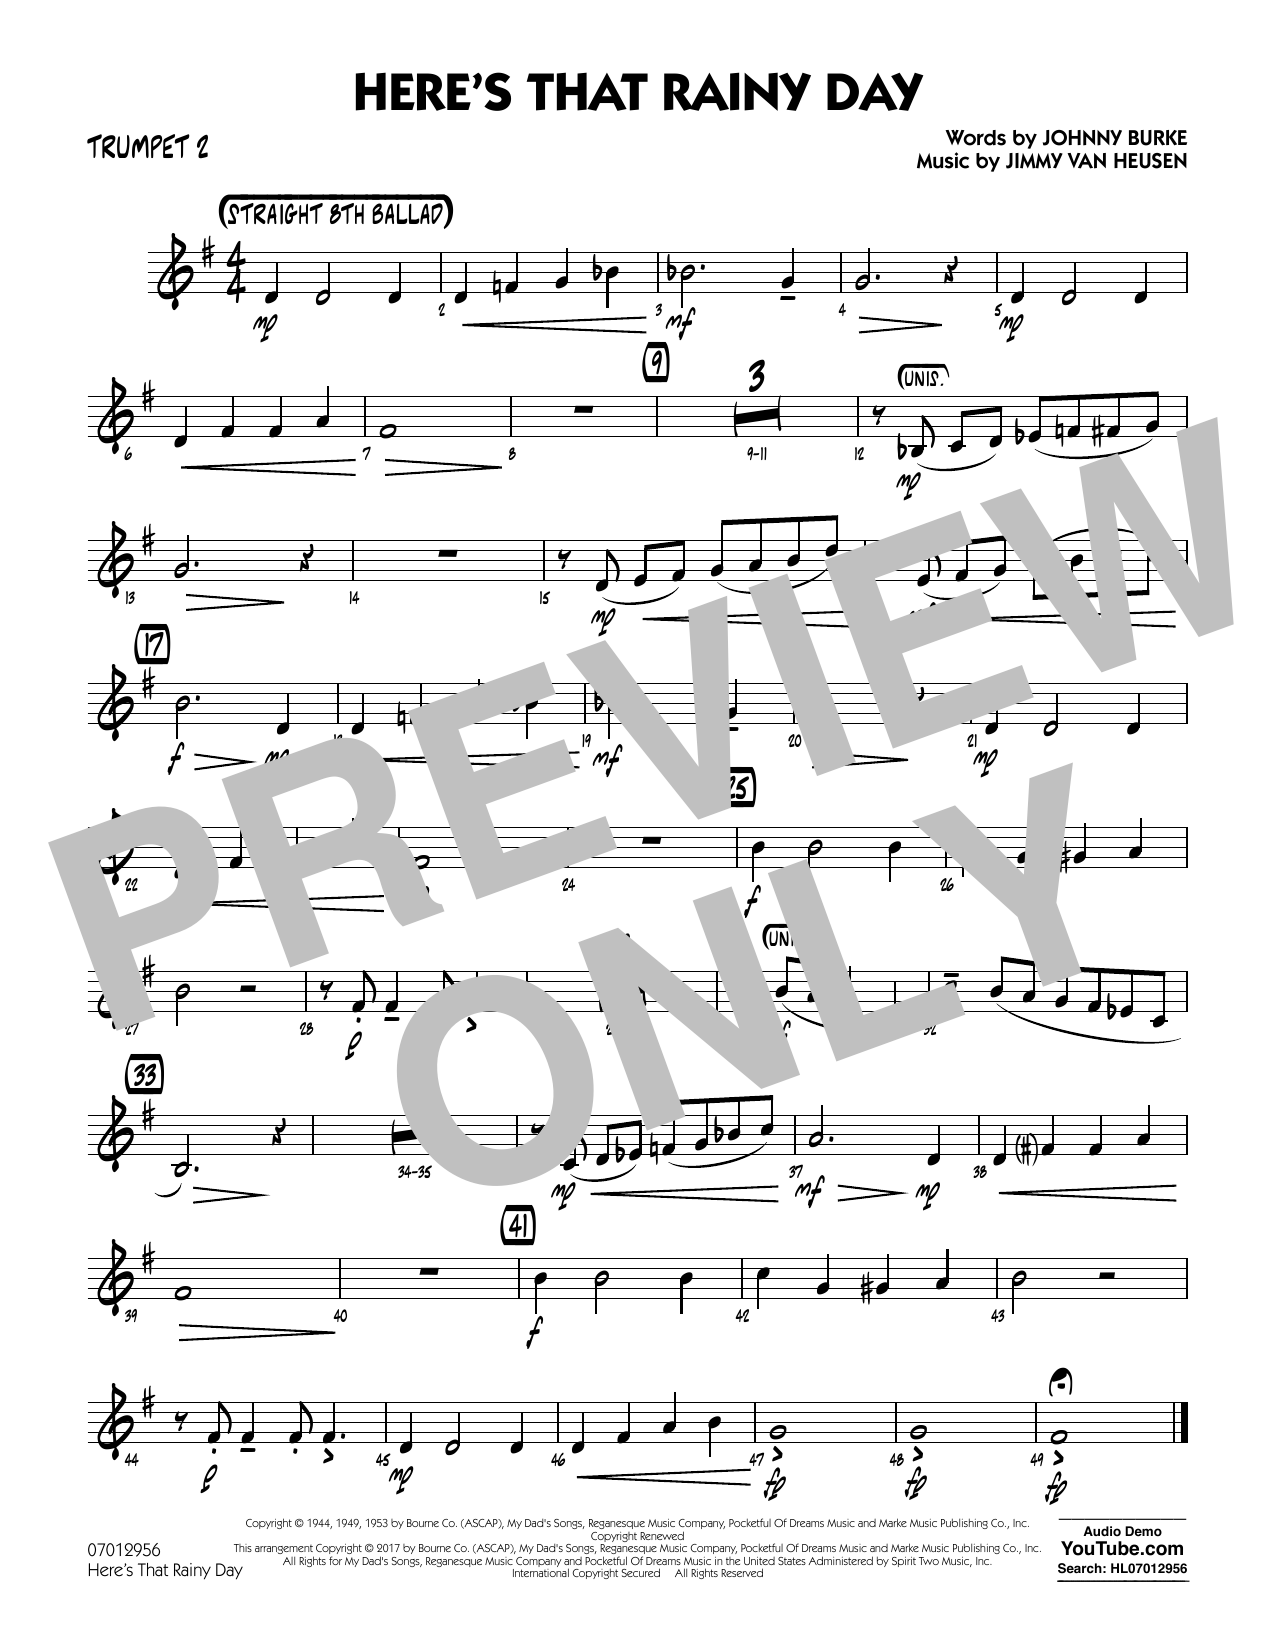 Rick Stitzel Here's That Rainy Day - Trumpet 2 sheet music notes and chords. Download Printable PDF.